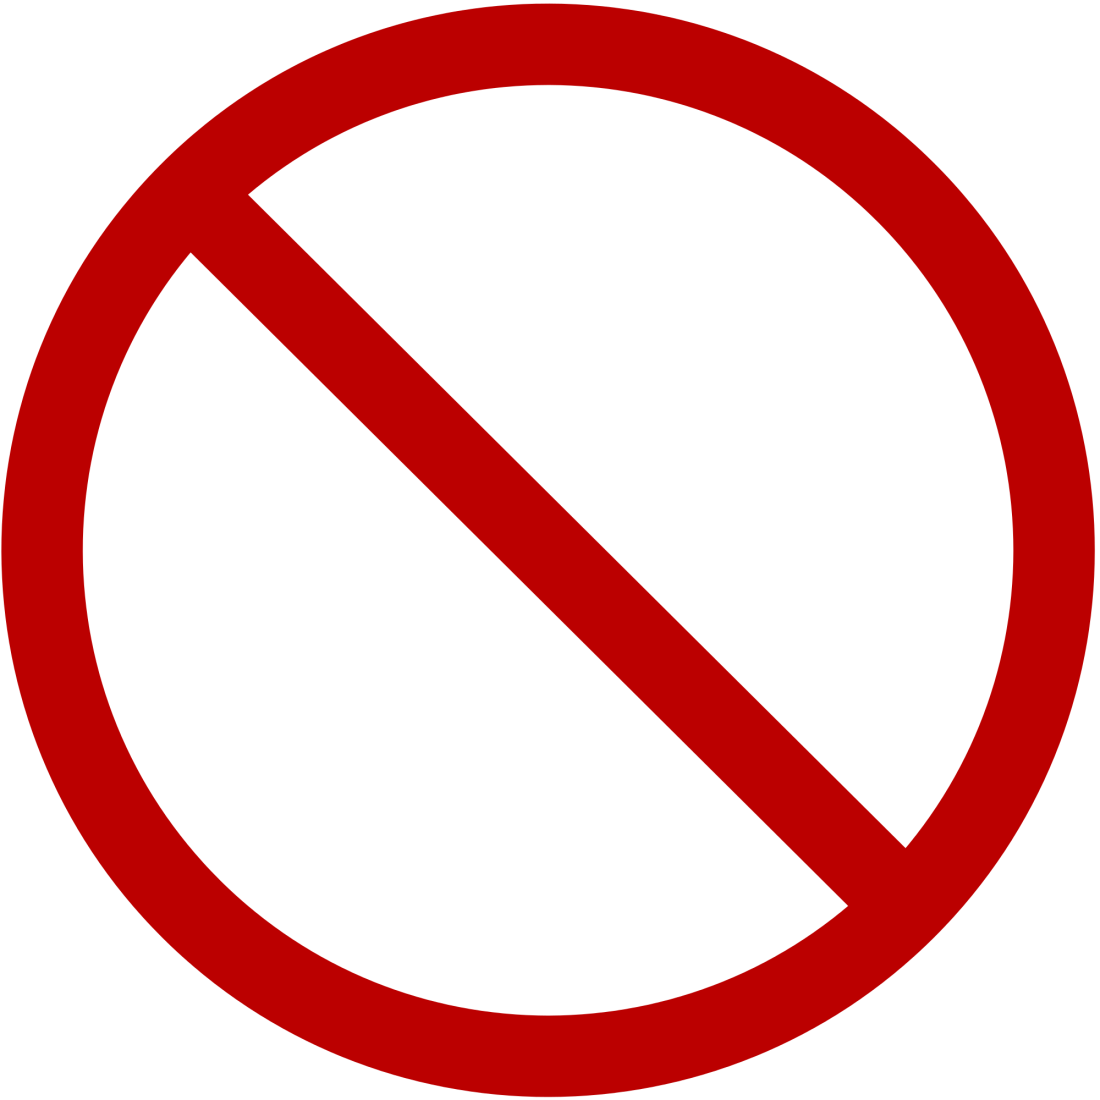 2000px-Stop.svg